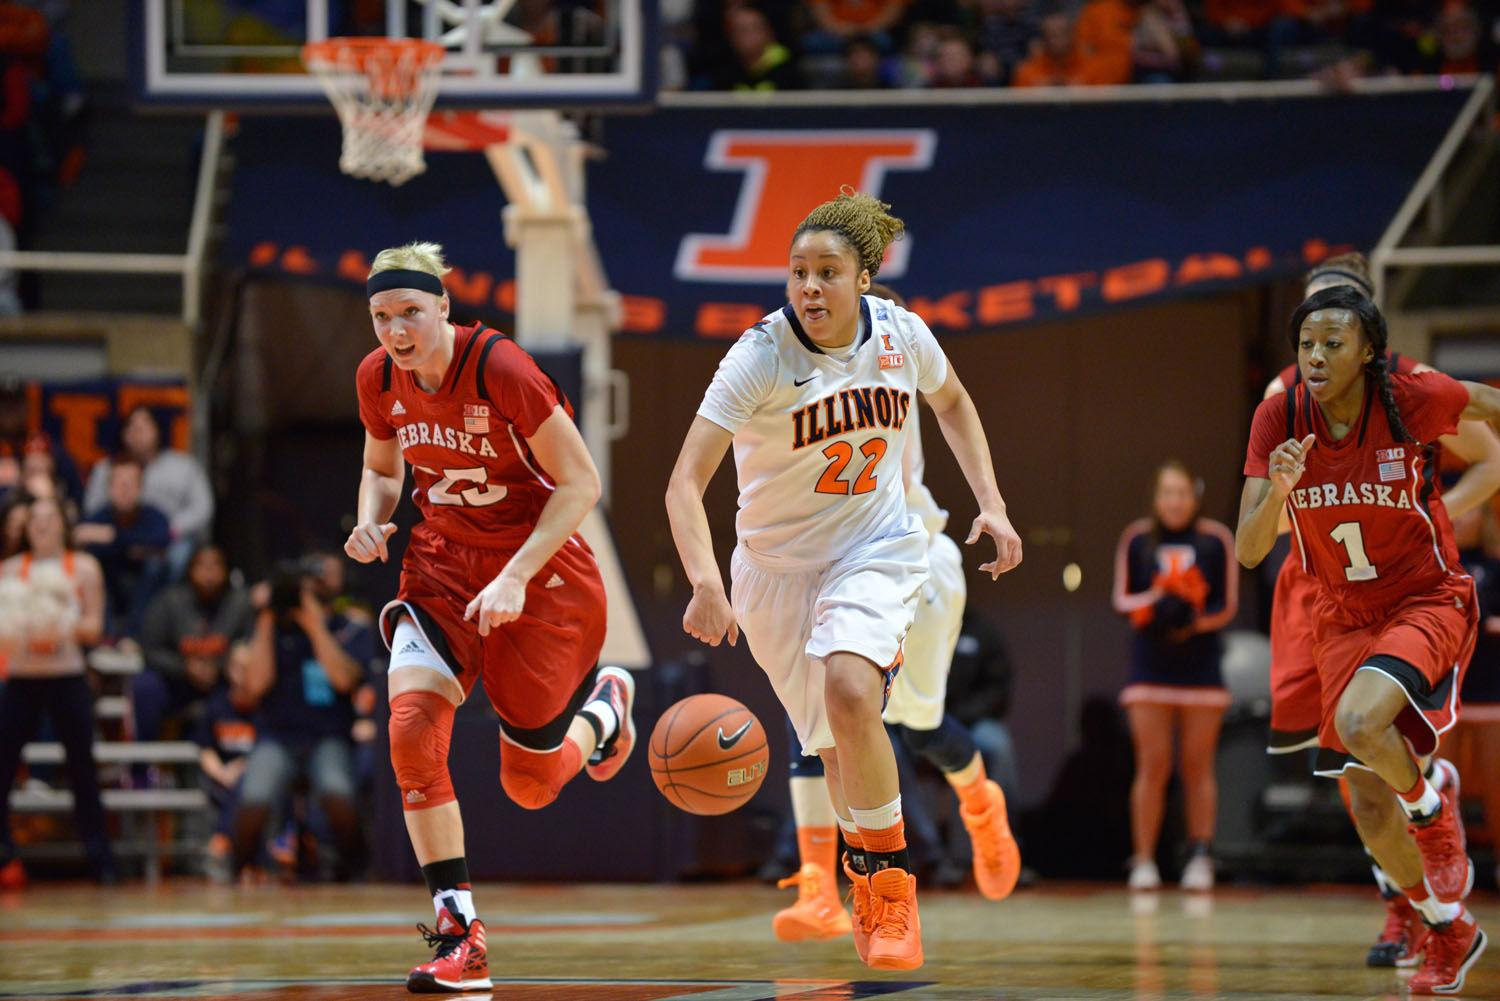 Illinois' Ivory Crawford dribbles the ball during the game against Nebraska on Jan. 12, 2014. The senior could play in the final game of her Illini career in the Big Ten tournament.